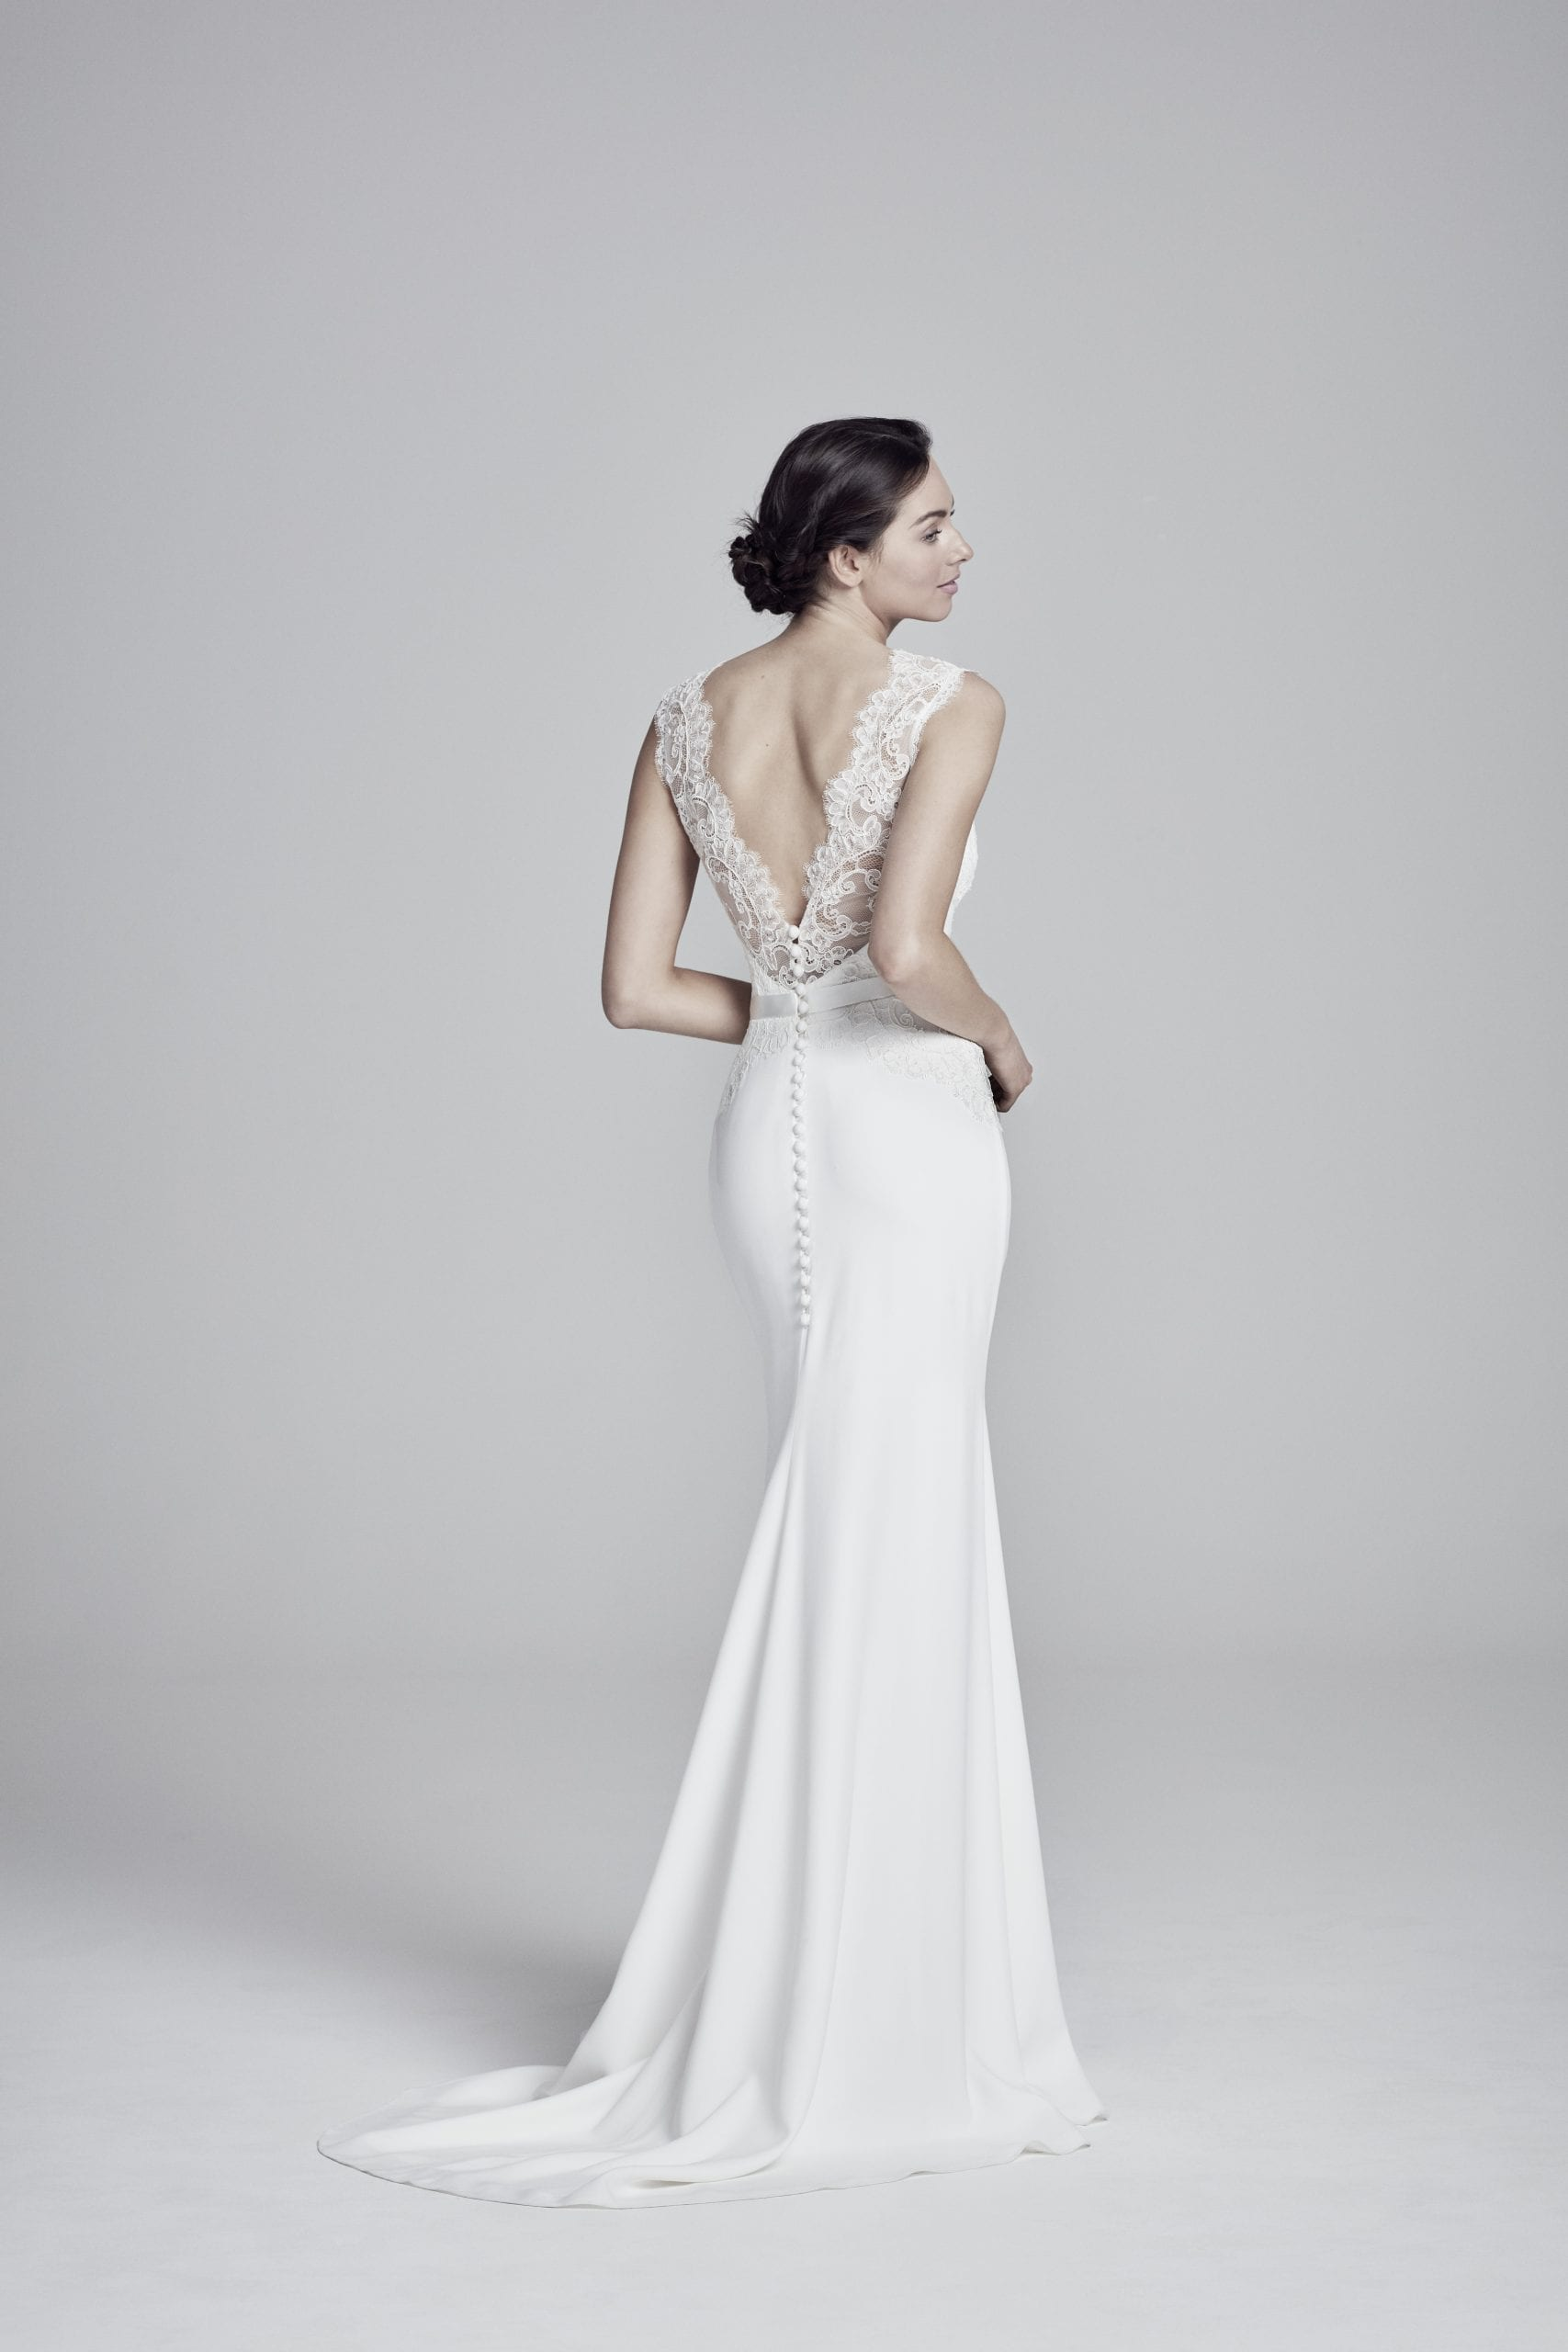 Antionetta Wedding Dress (Back) - Suzanne Neville